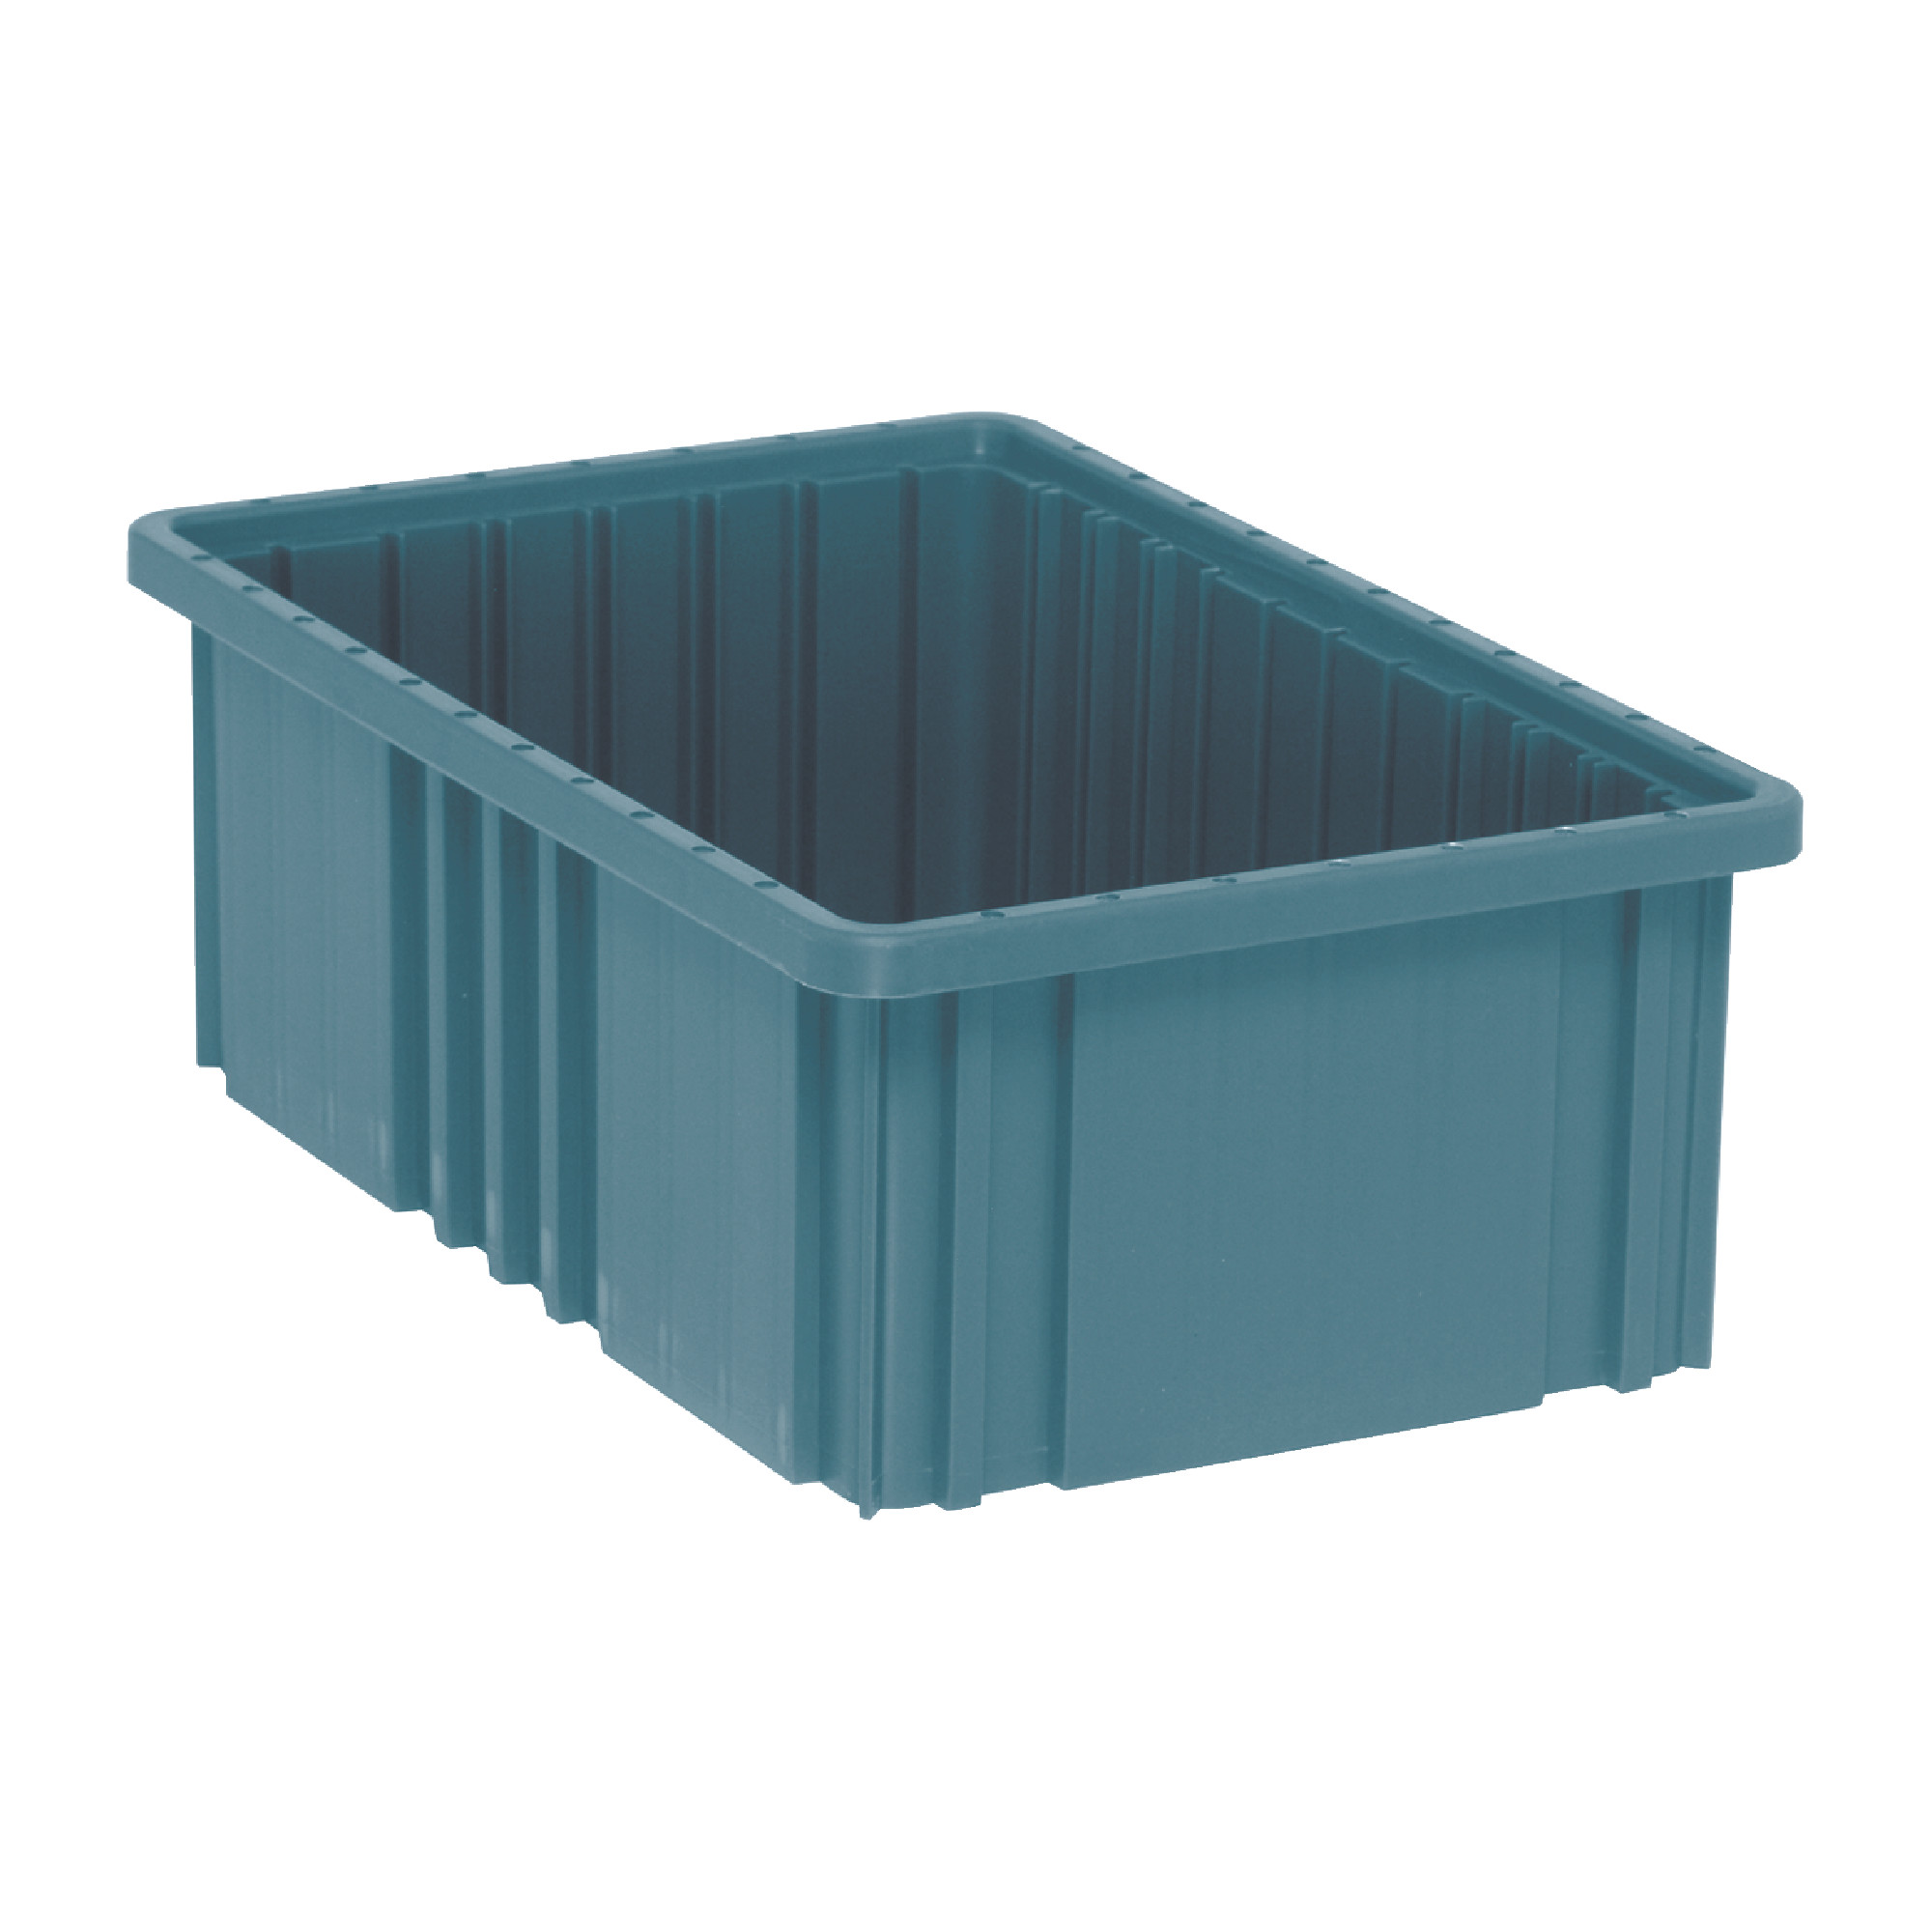 Bins For Dividable Grid Containers